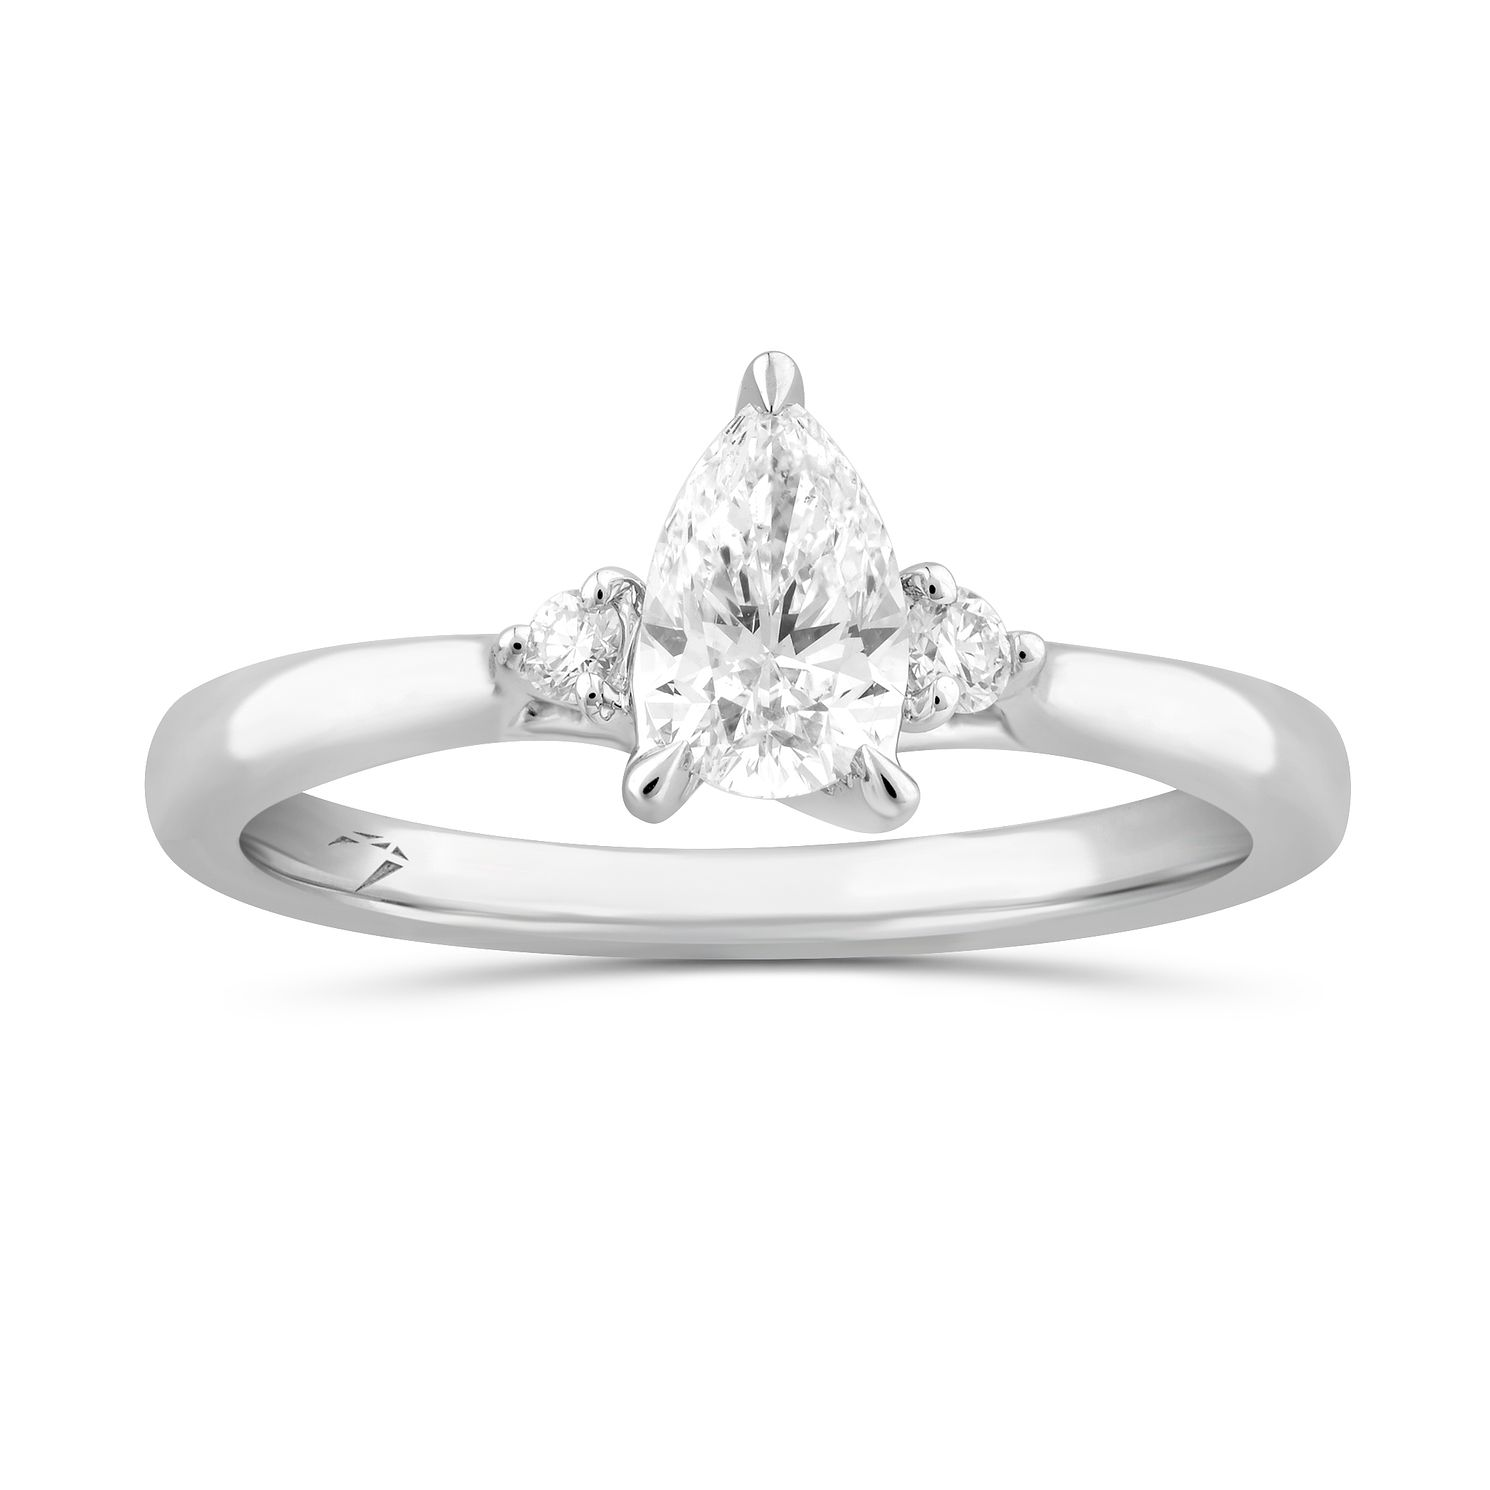 Arctic Light Platinum 0.55ct Pear Cut Diamond Solitaire Ring - Product number 5294061